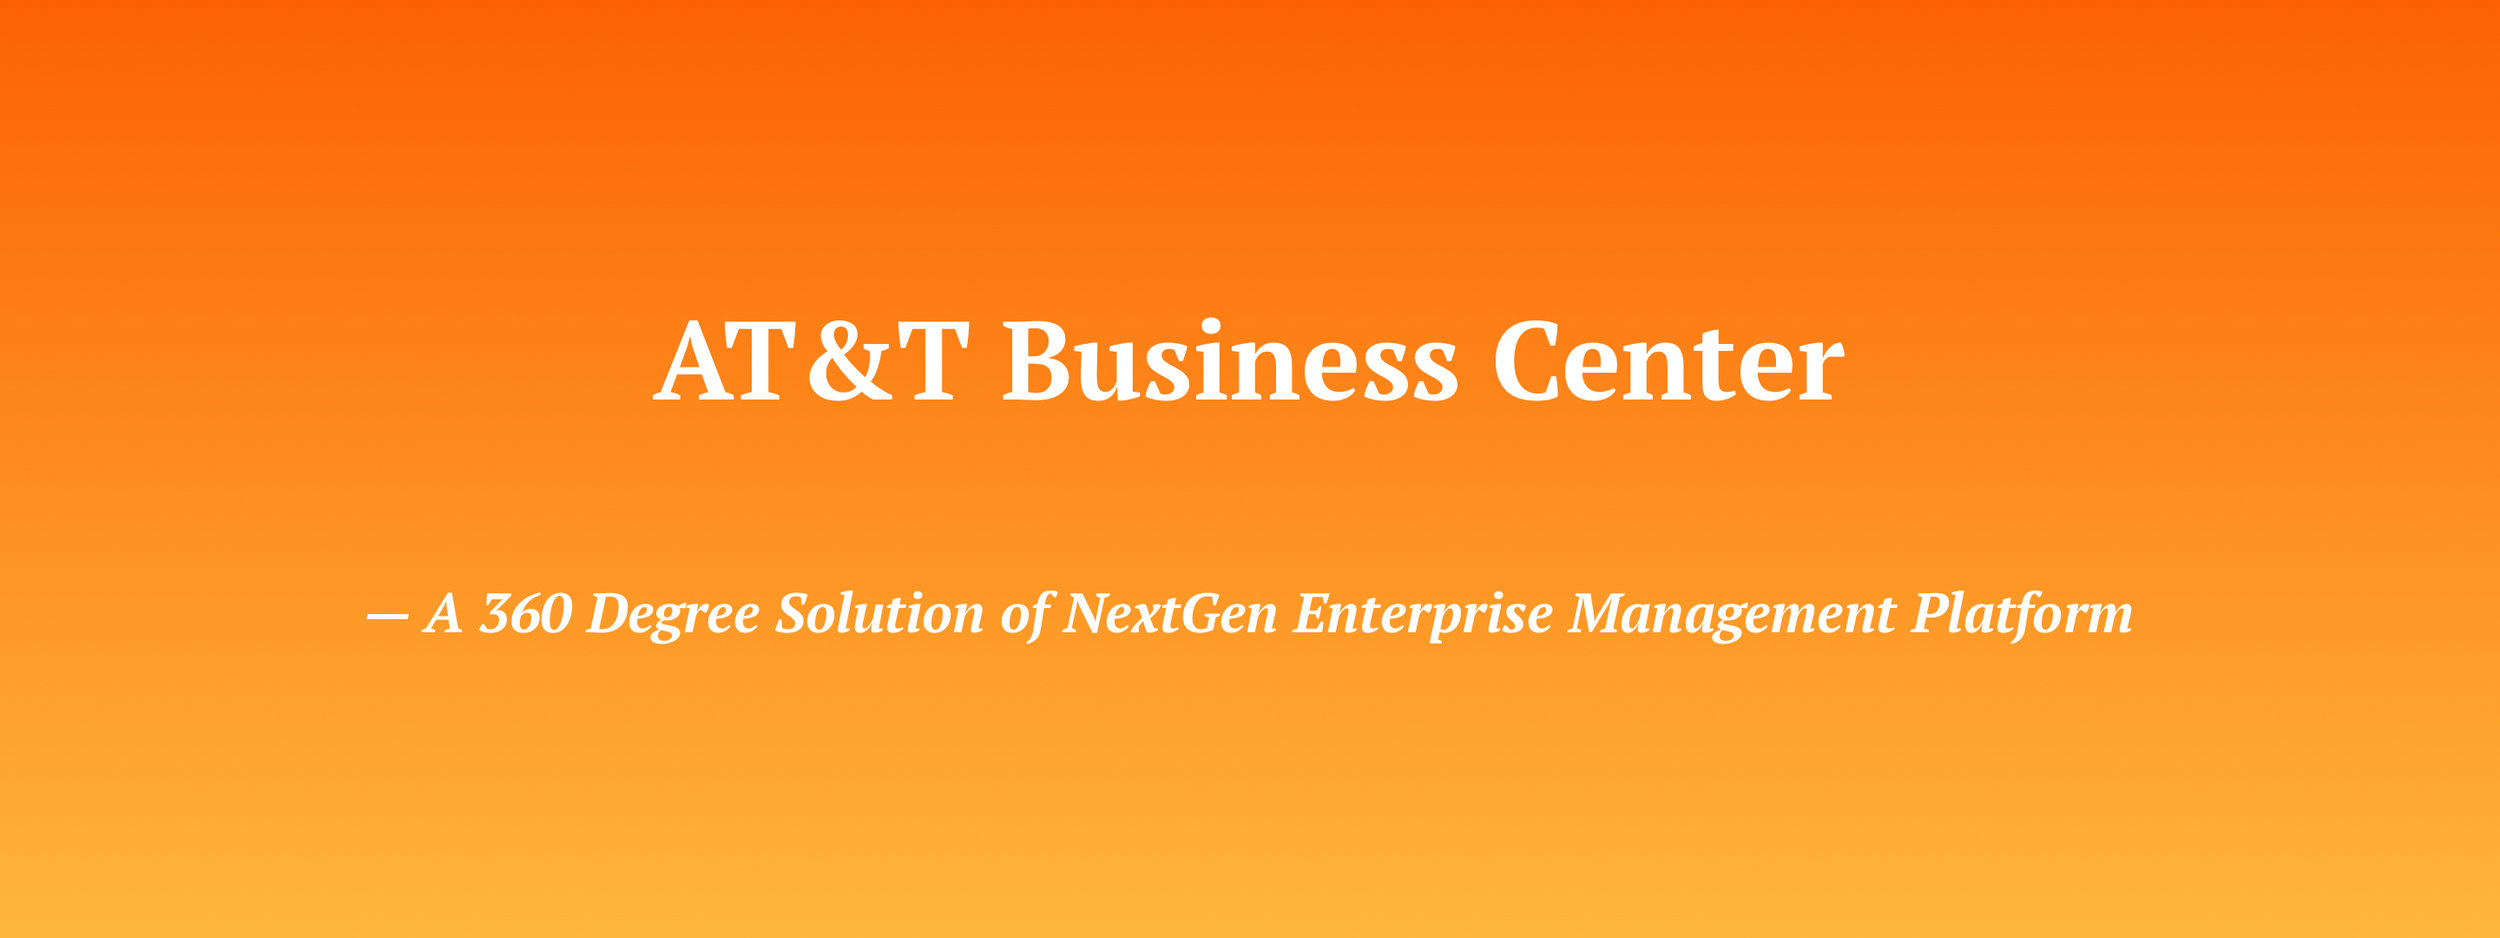 AT&T Business Center + — A 360 Degree Solut.jpg